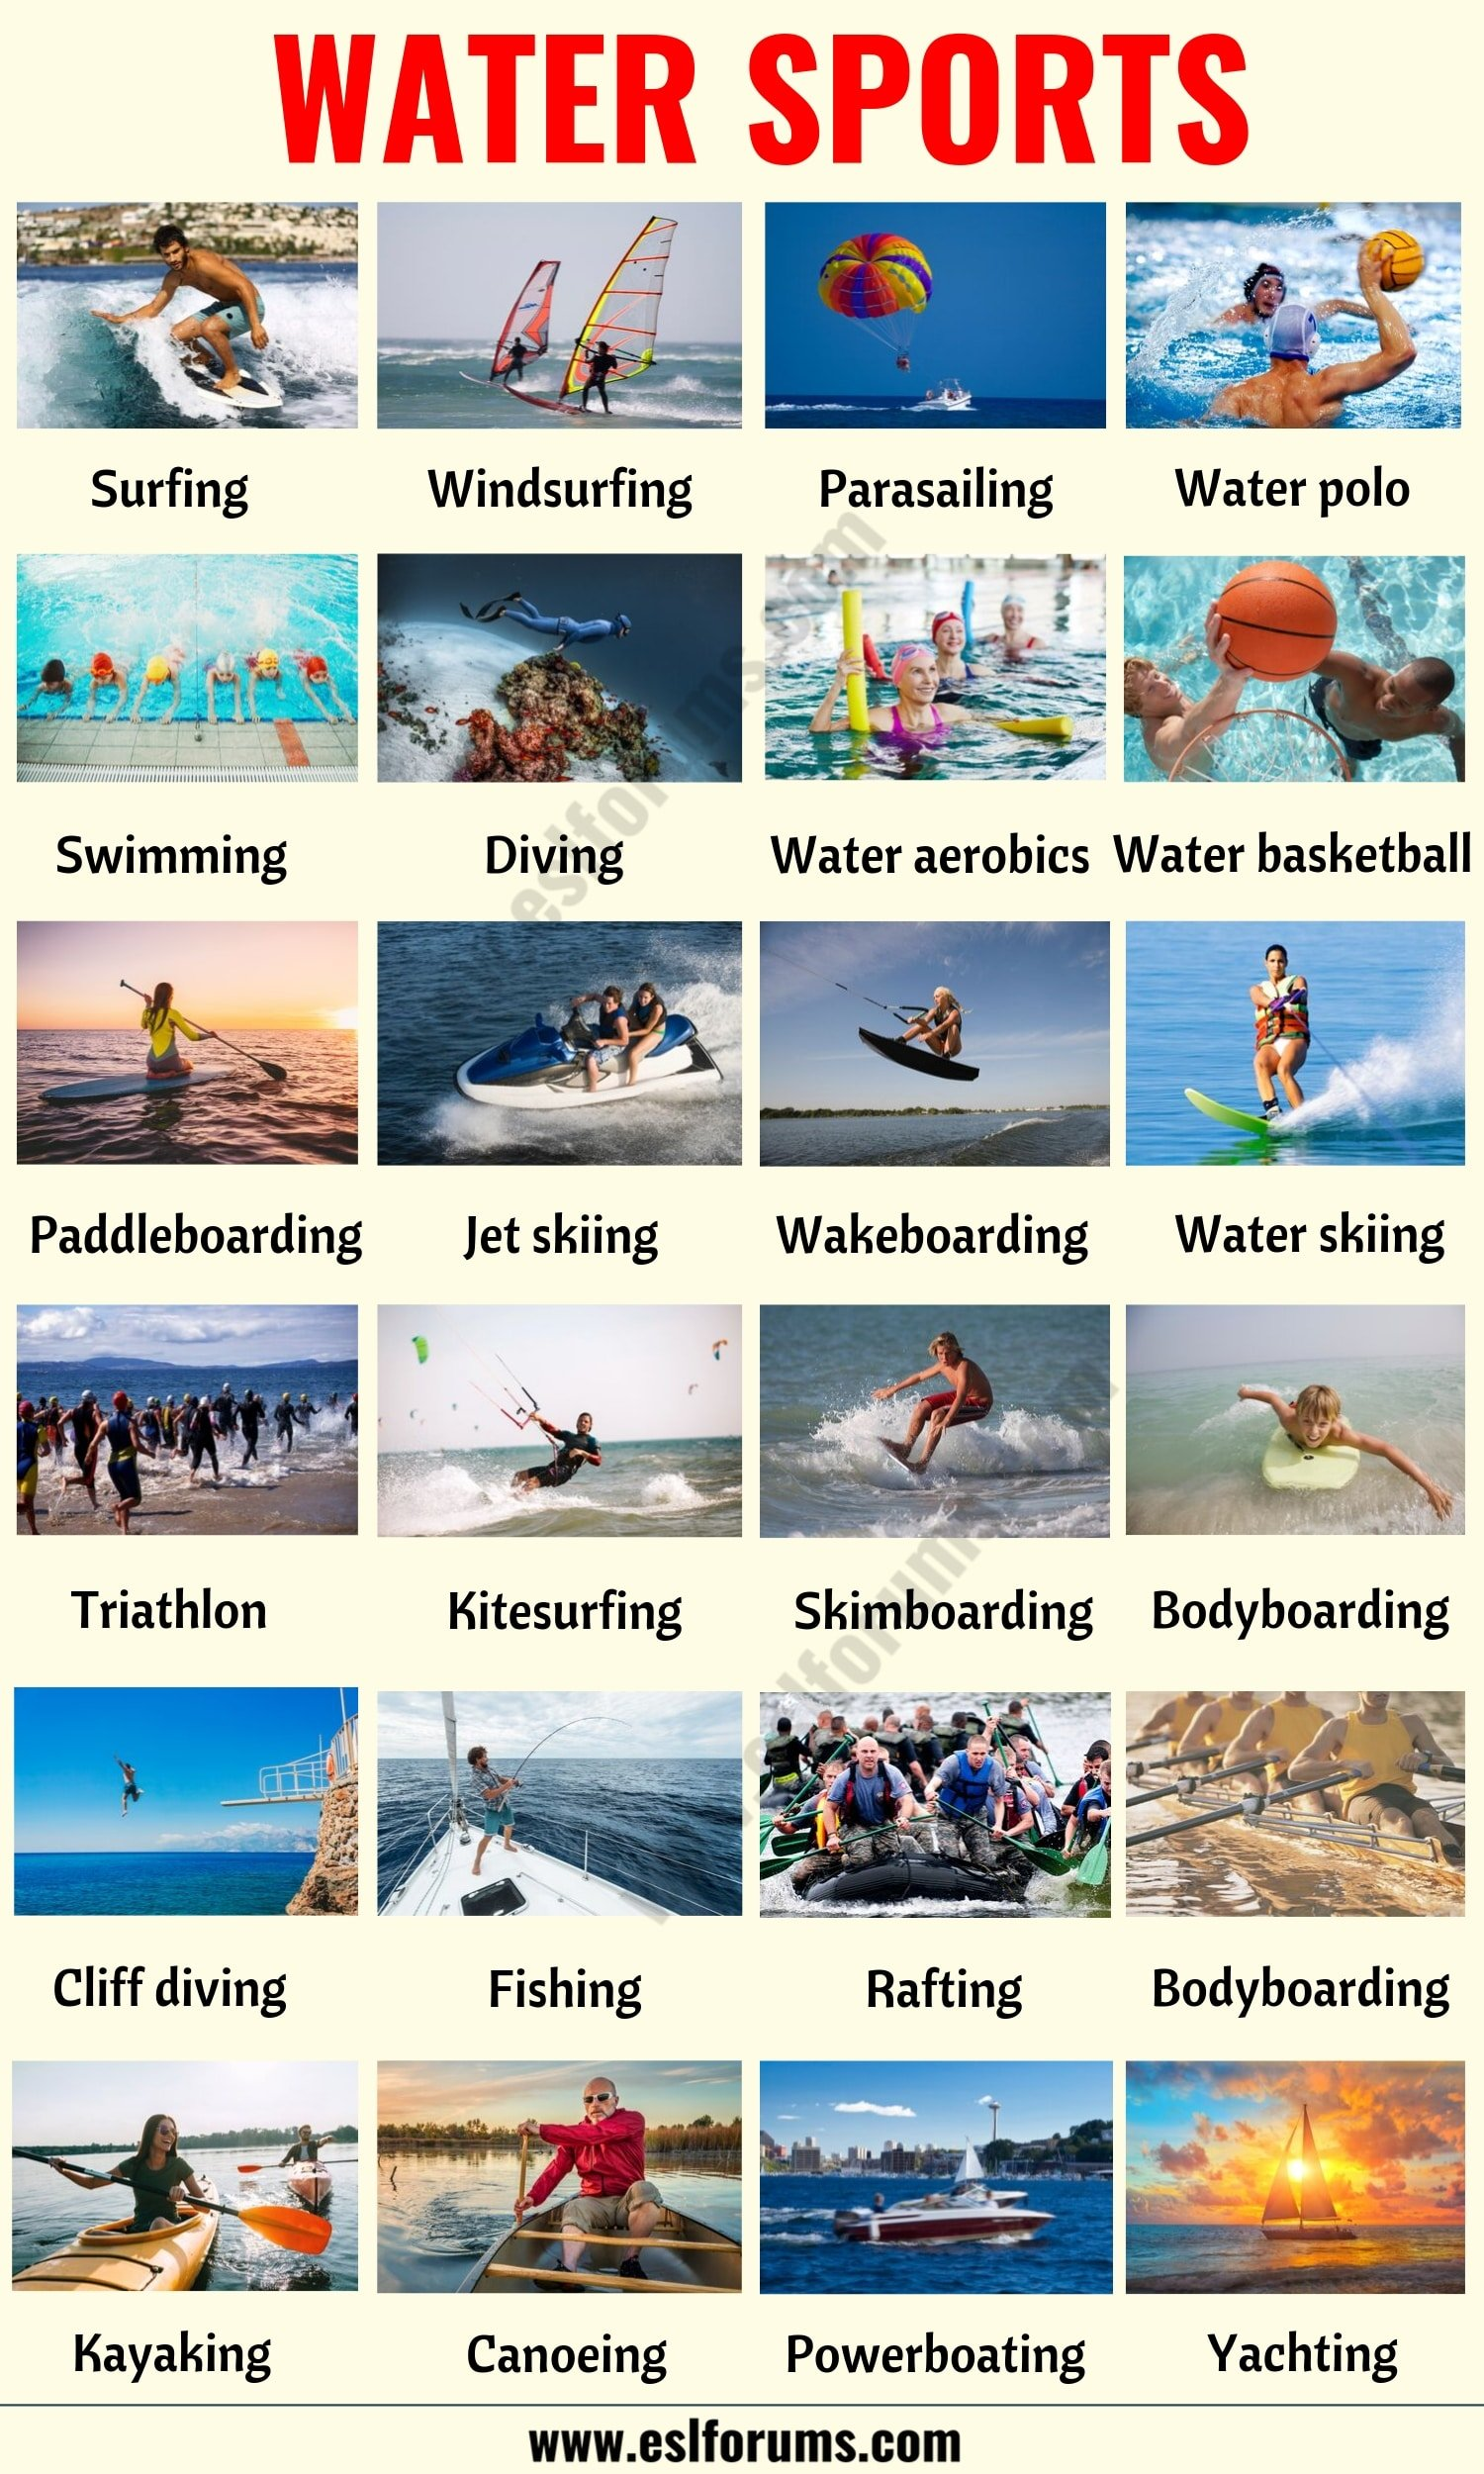 Water Sports | List of 30+ Incredibly Awesome Water Sports You Must Try!